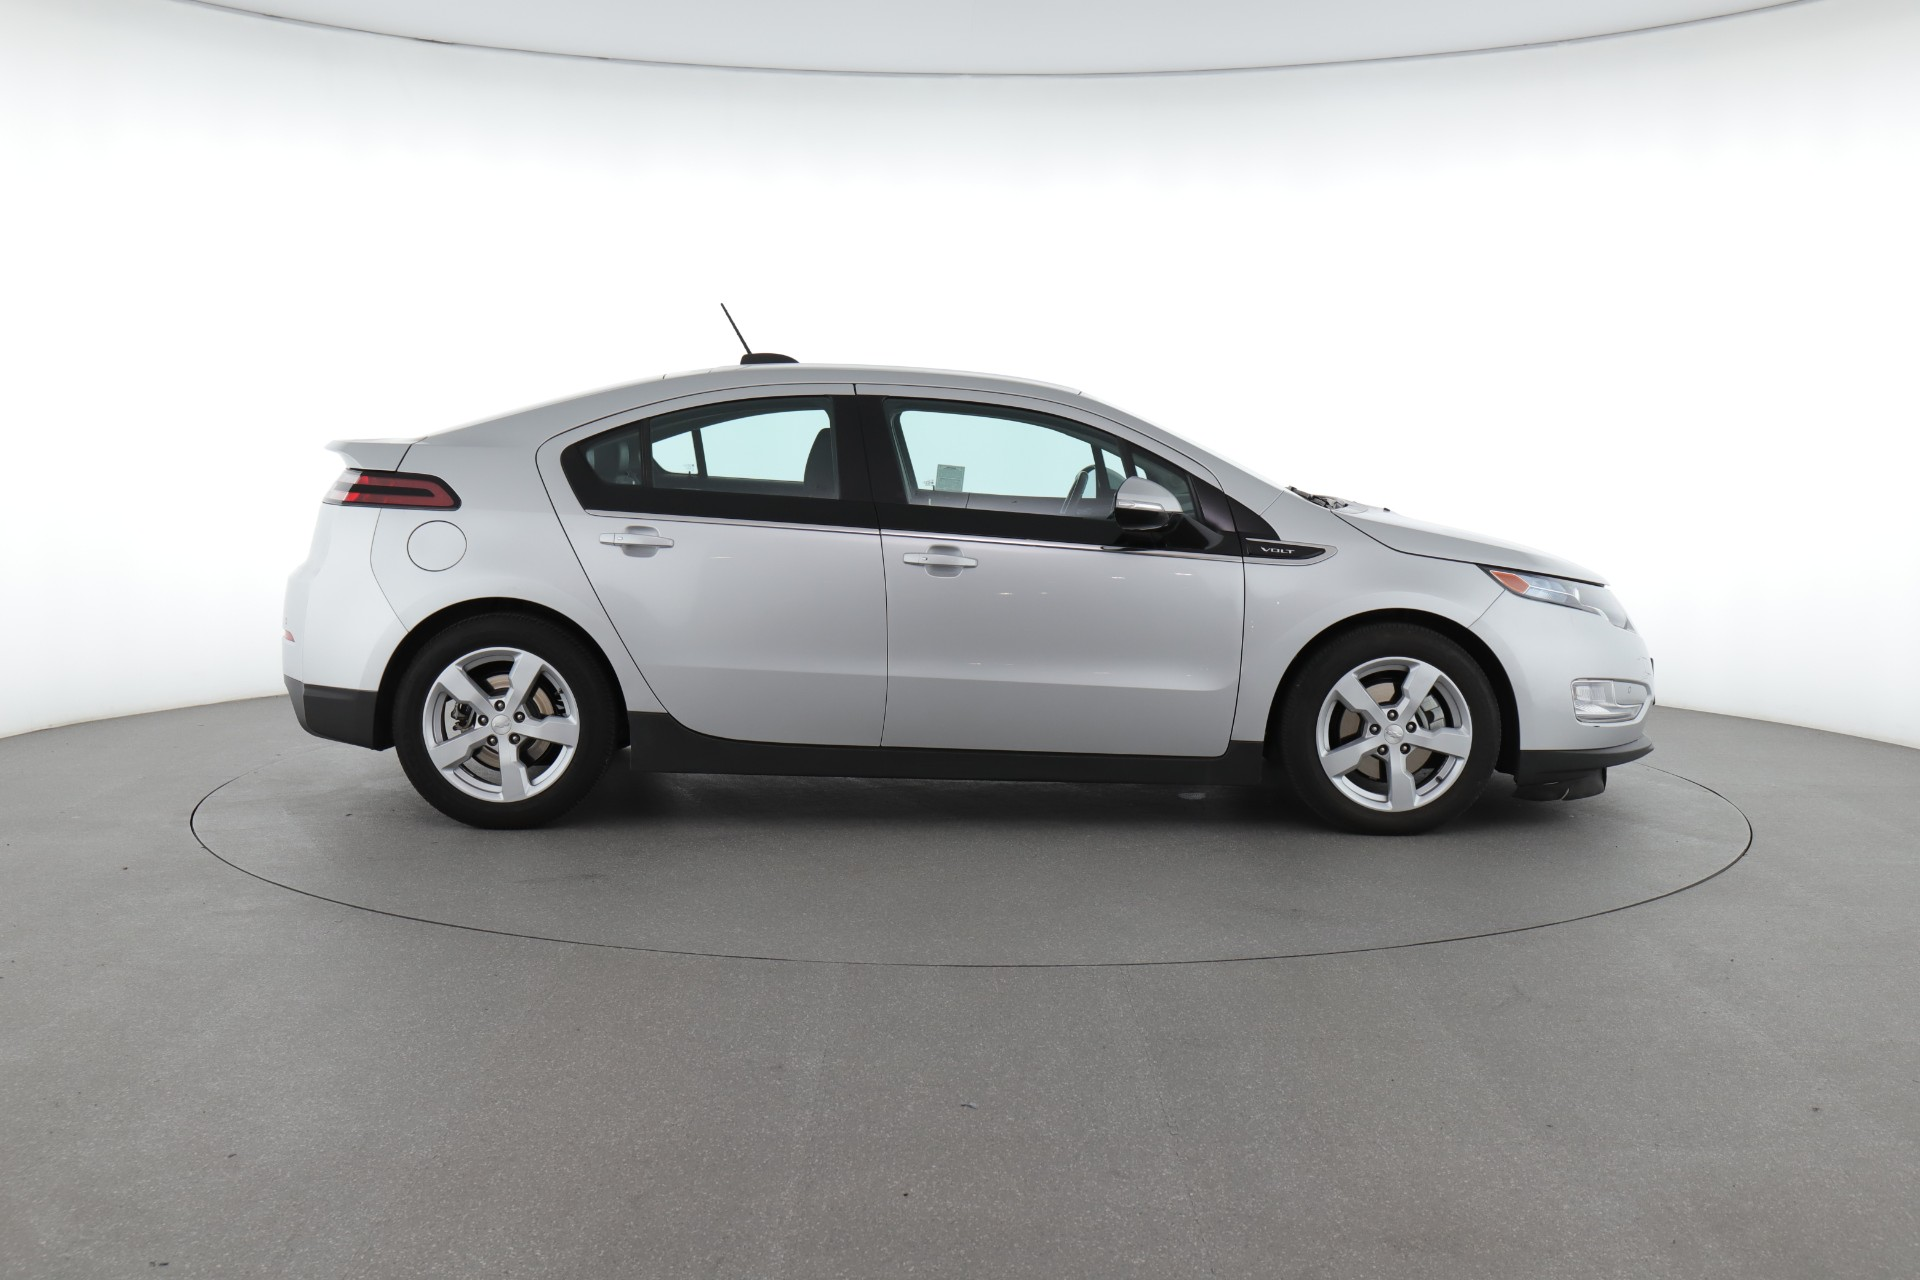 Chevy Volt Reliability: Is Buying A Used Chevy Volt Worth It?